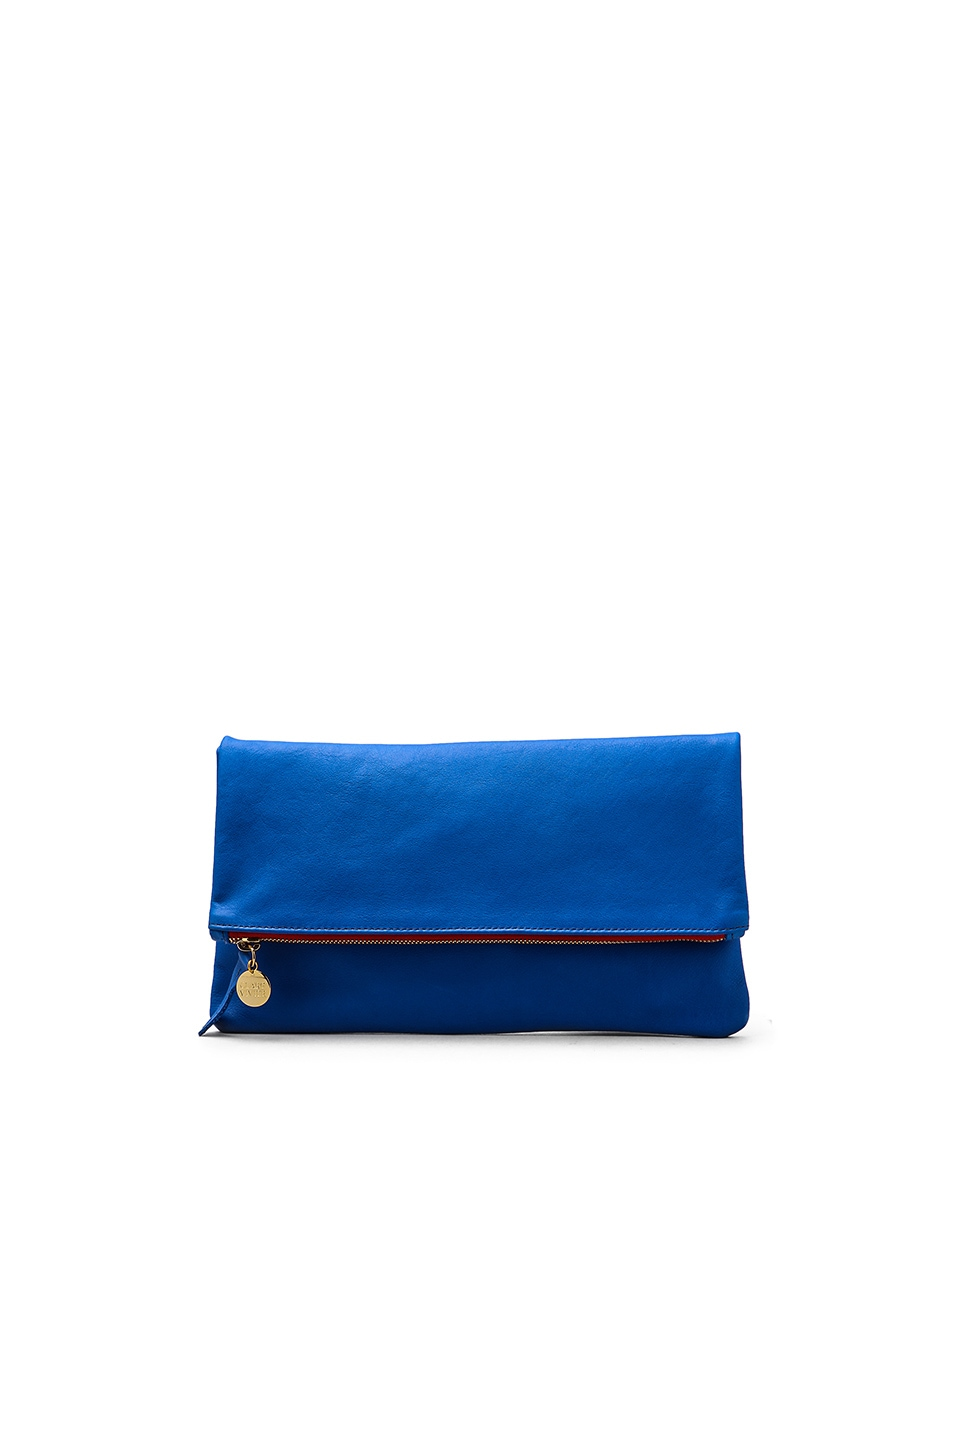 Clare V. Foldover Maison Clutch in Cobalt